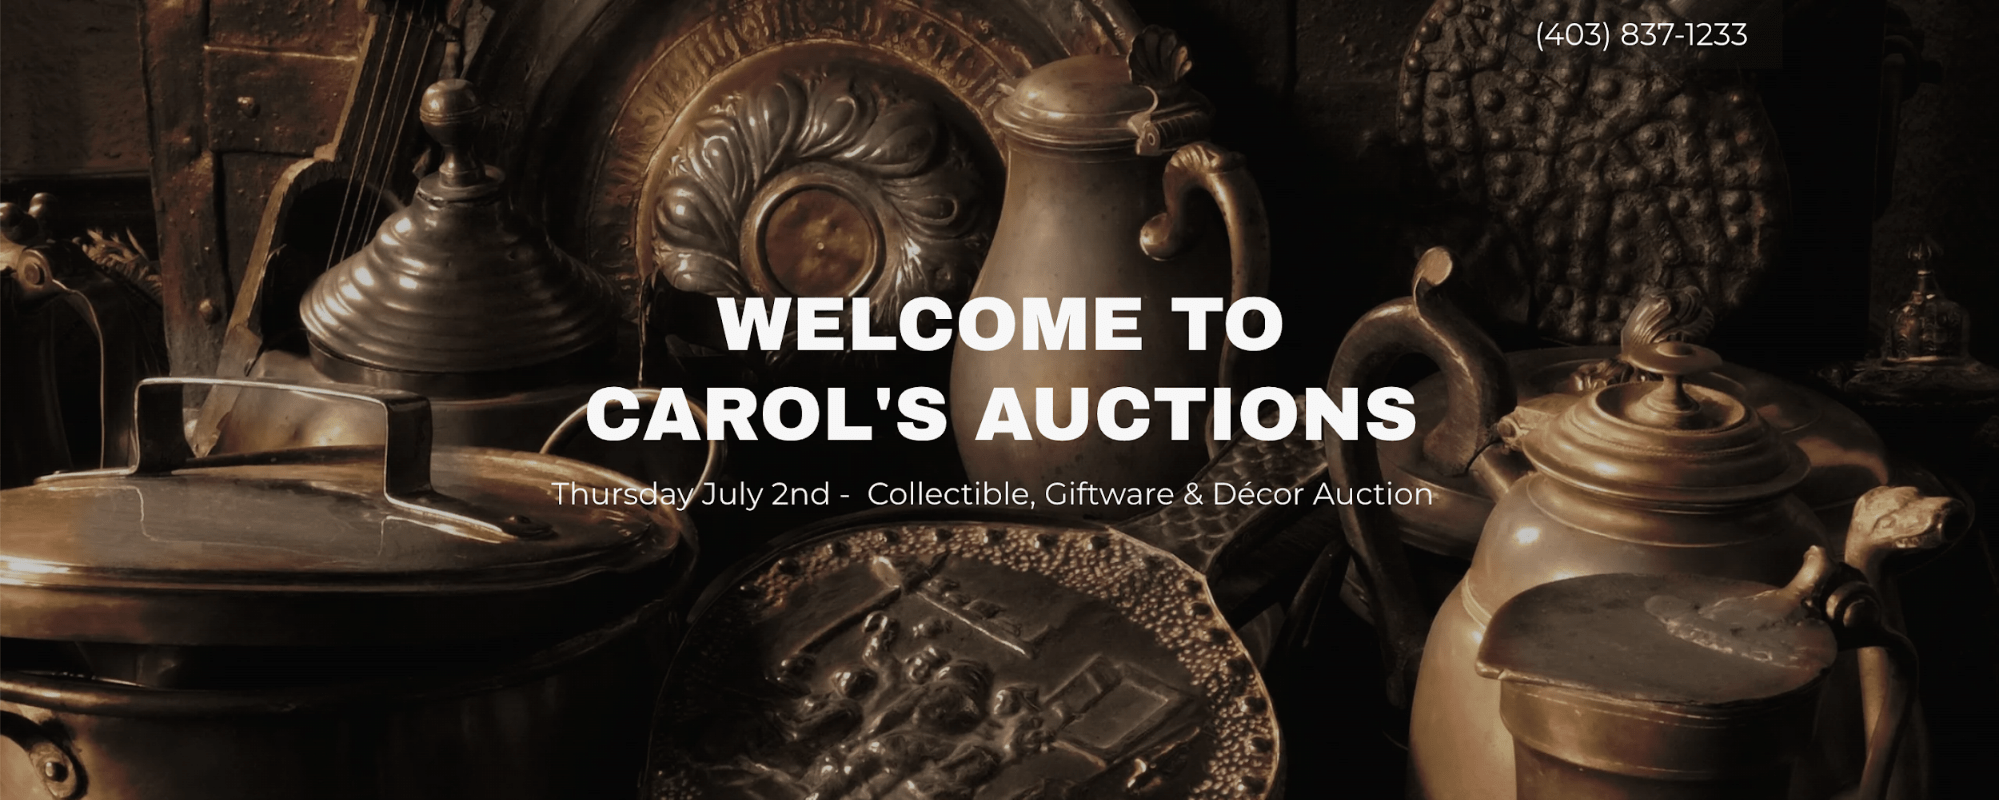 Carol's Auctions' Homepage